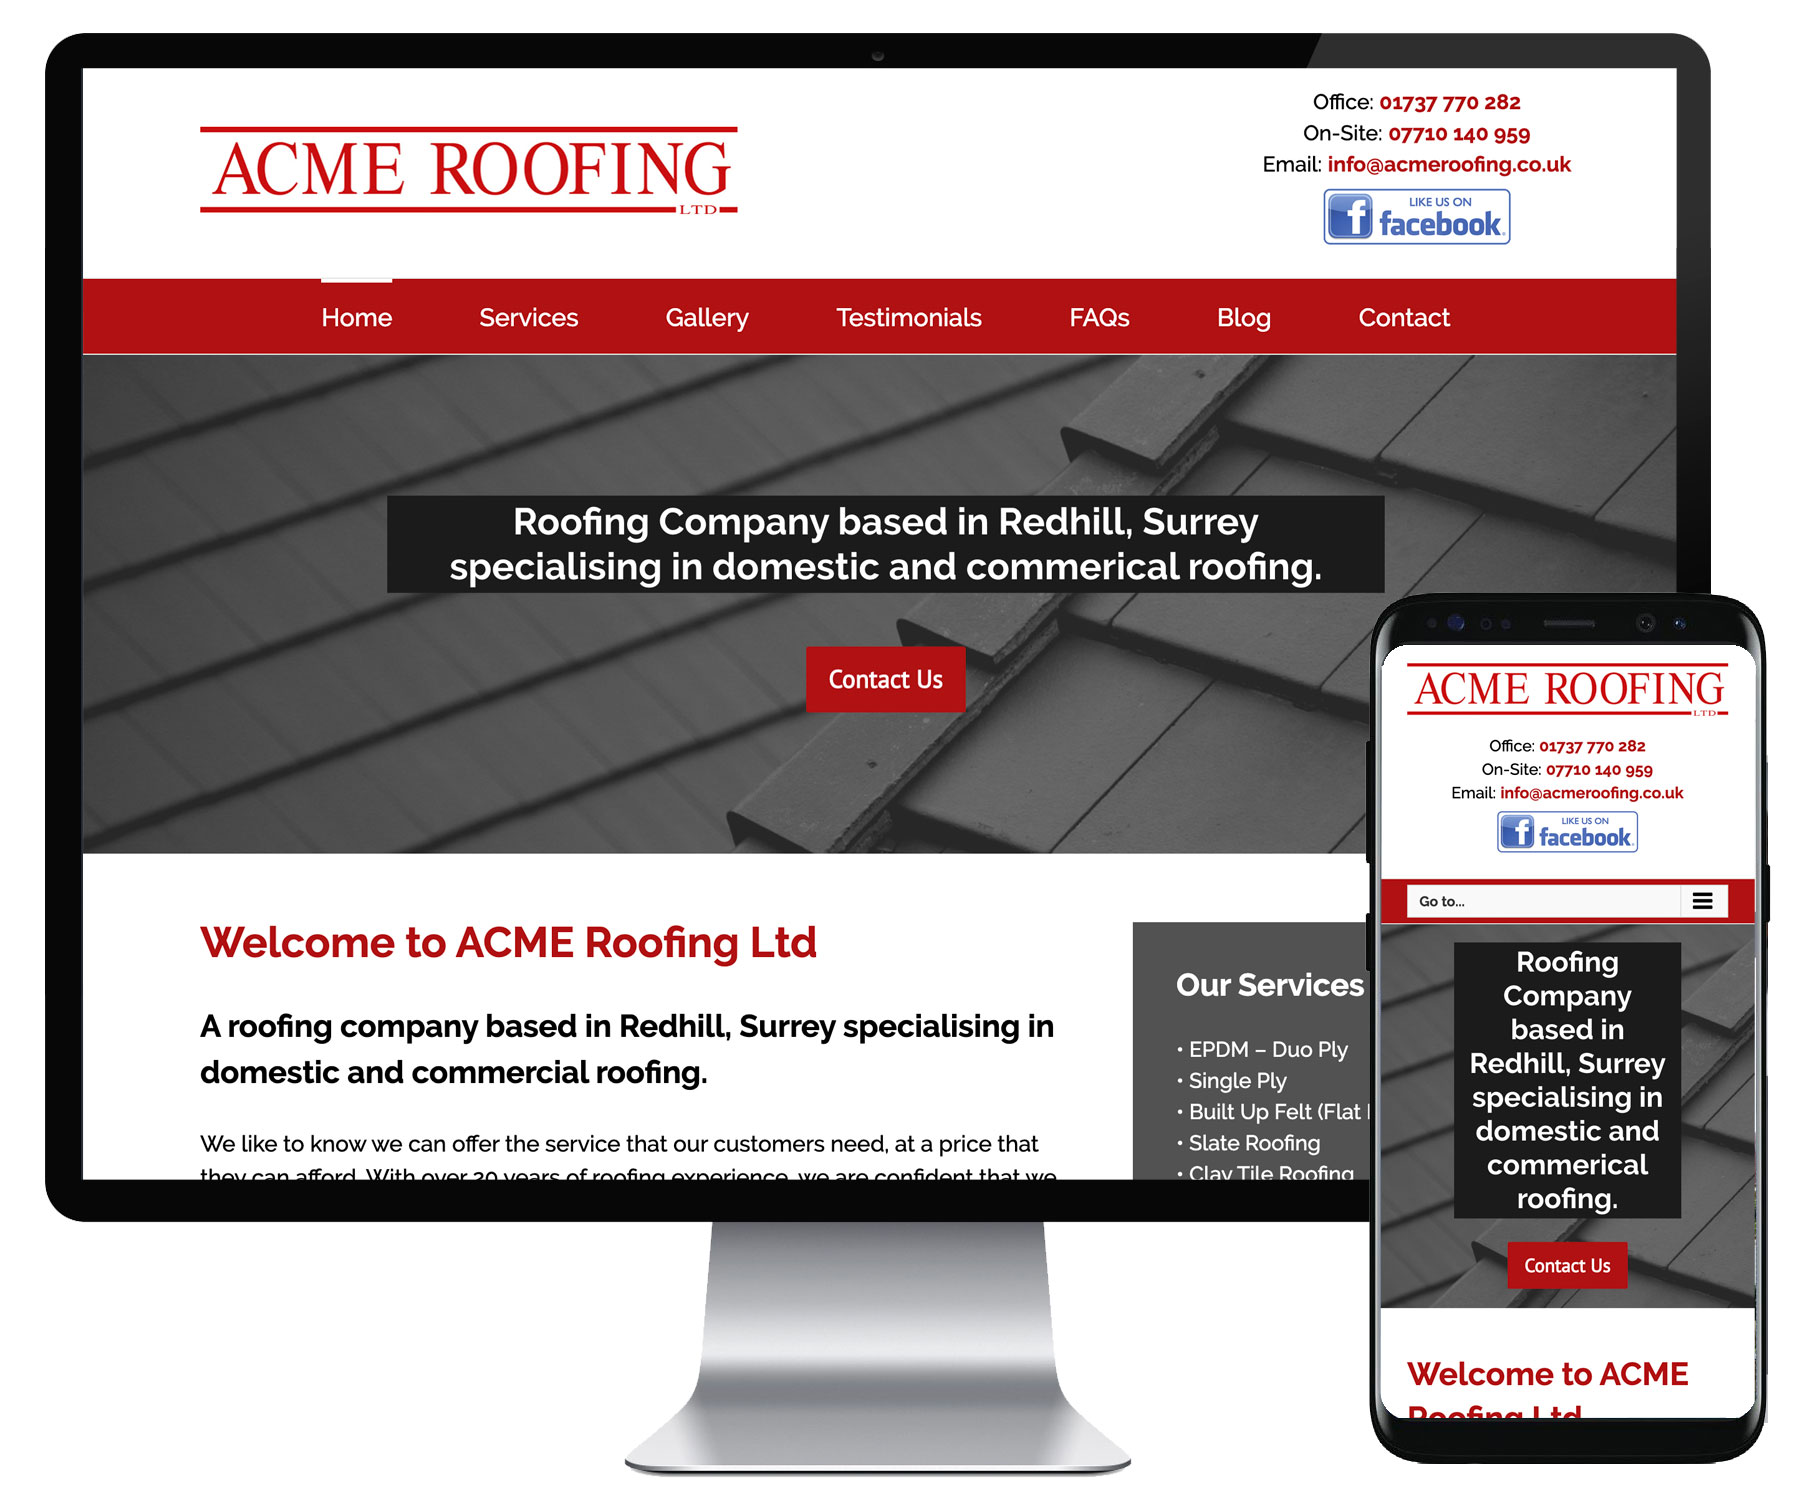 ACME Roofing website